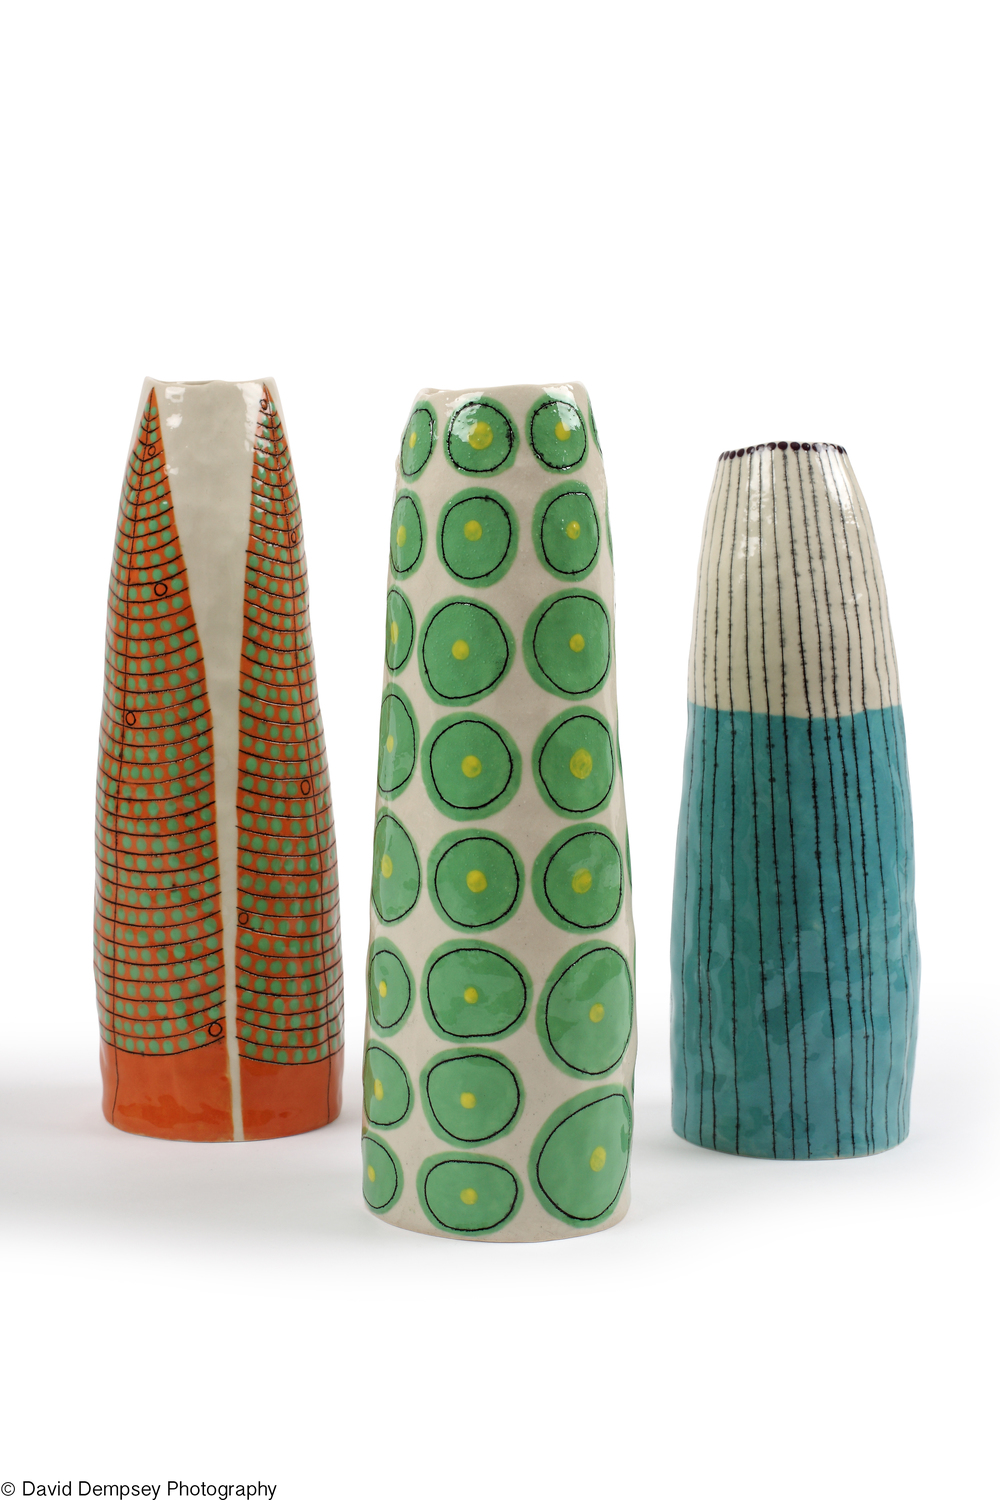 Ceramic designs by Andrew Ludick